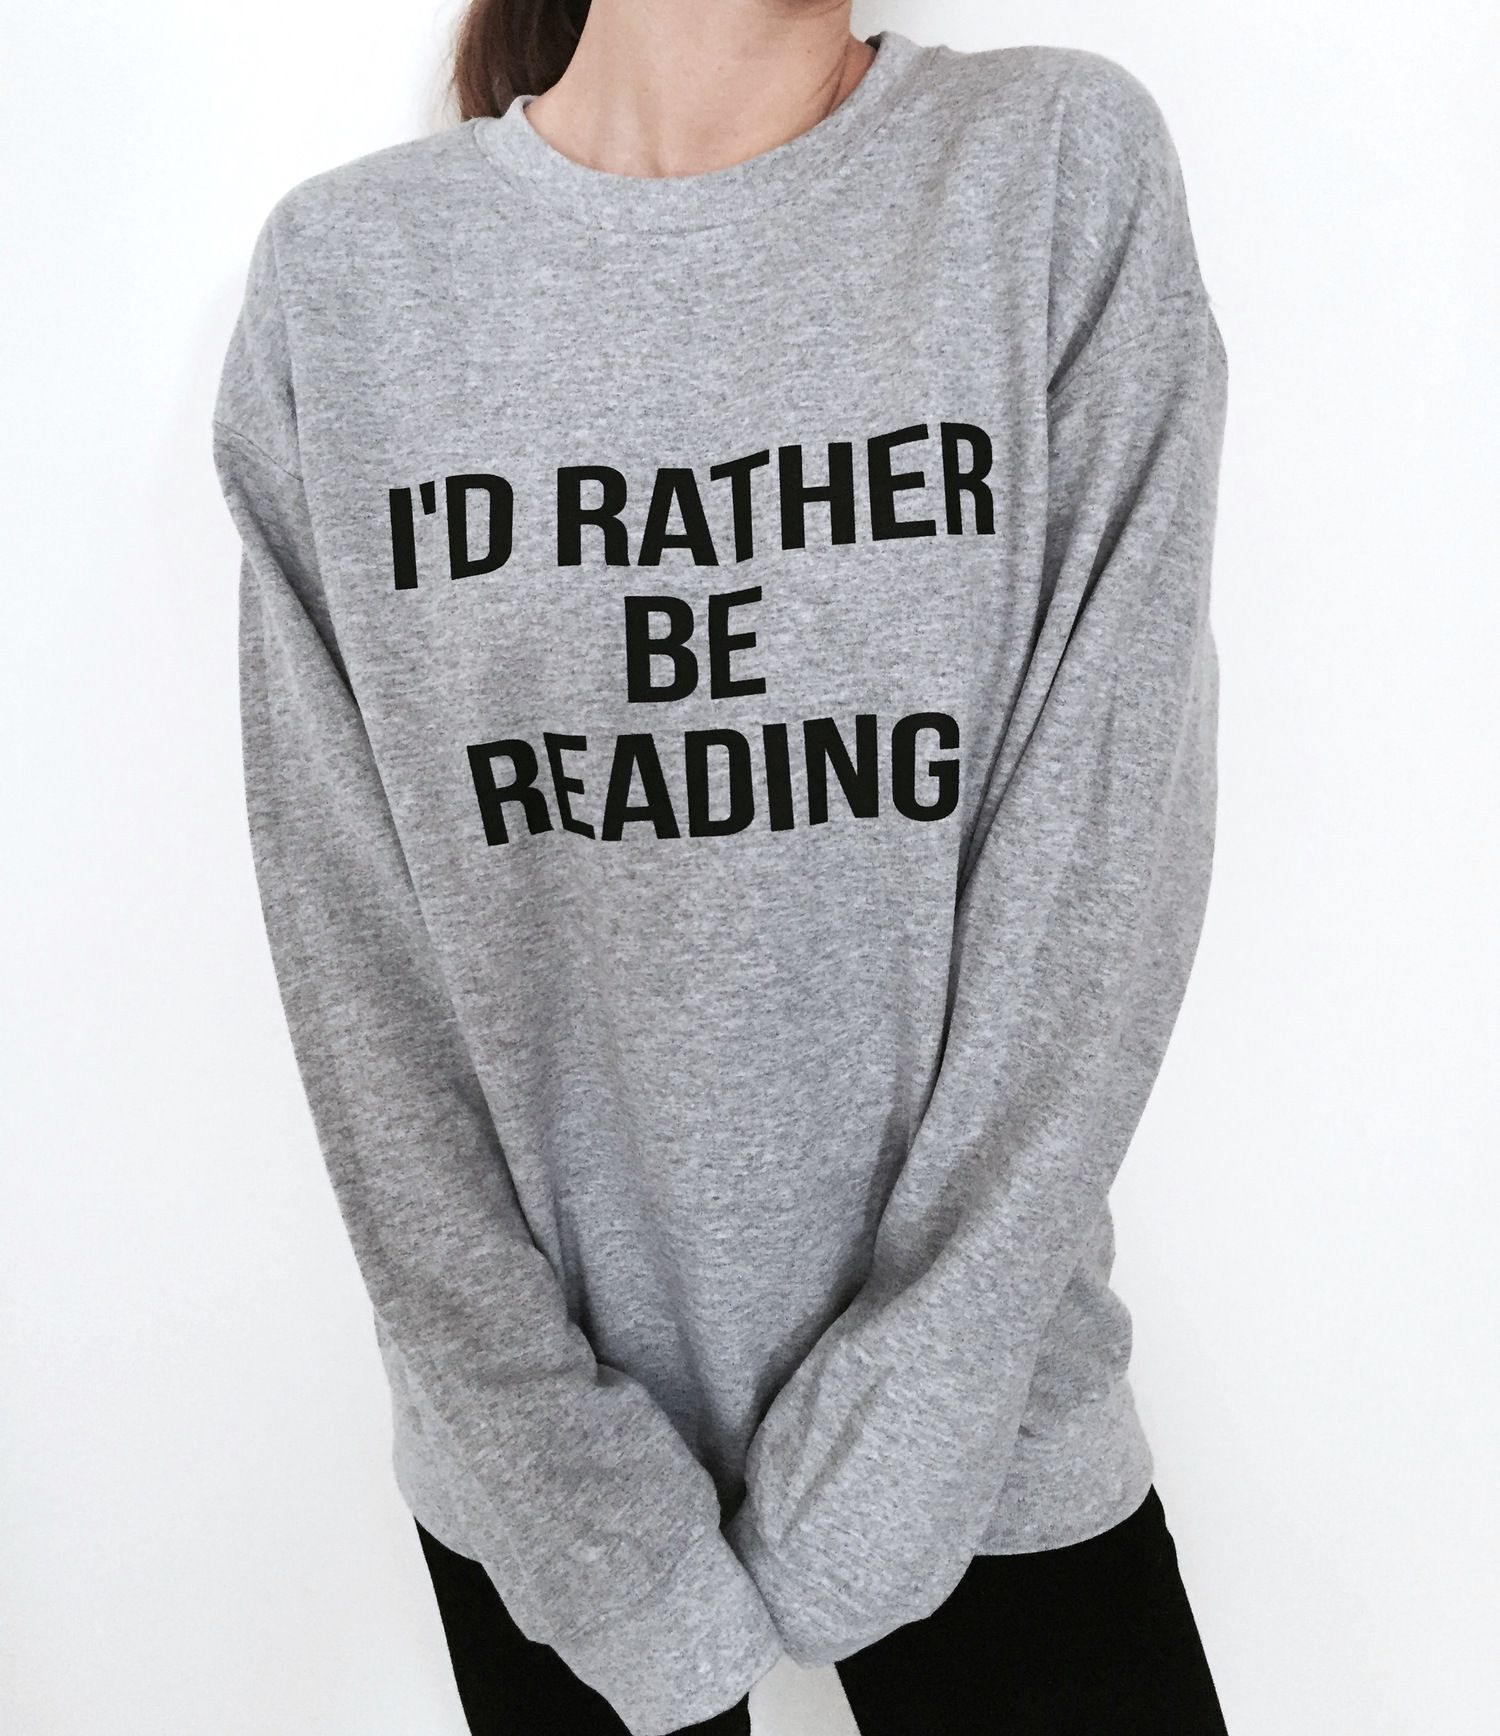 Cute Sweater Quotes: Sweatshirts Jumper Sweater Funny Fashion Cute Hipster Geek